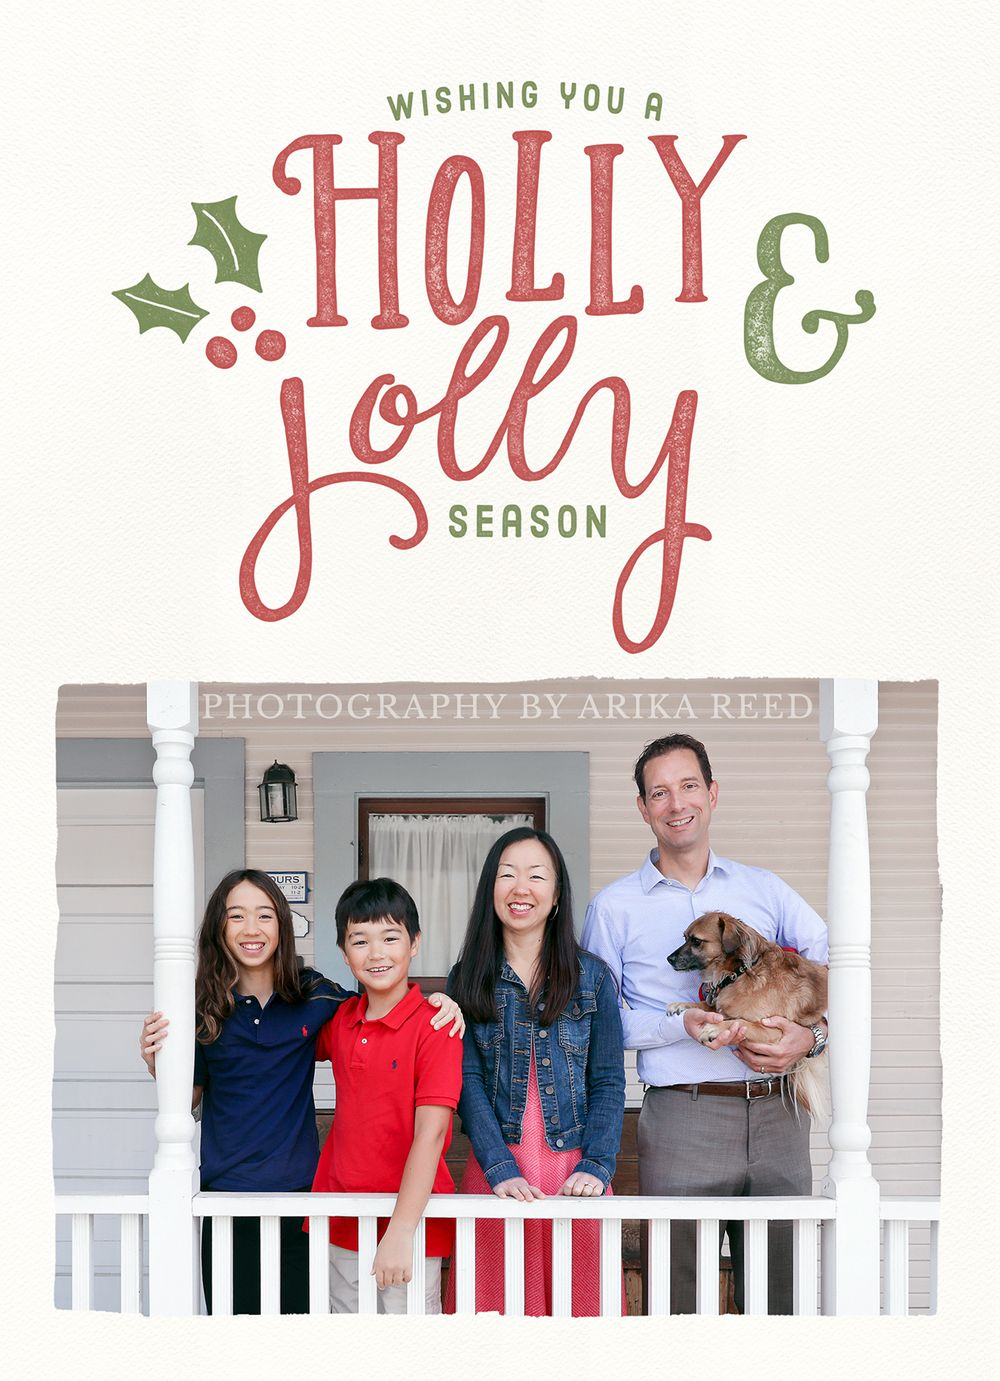 2019 Holly Jolly Season